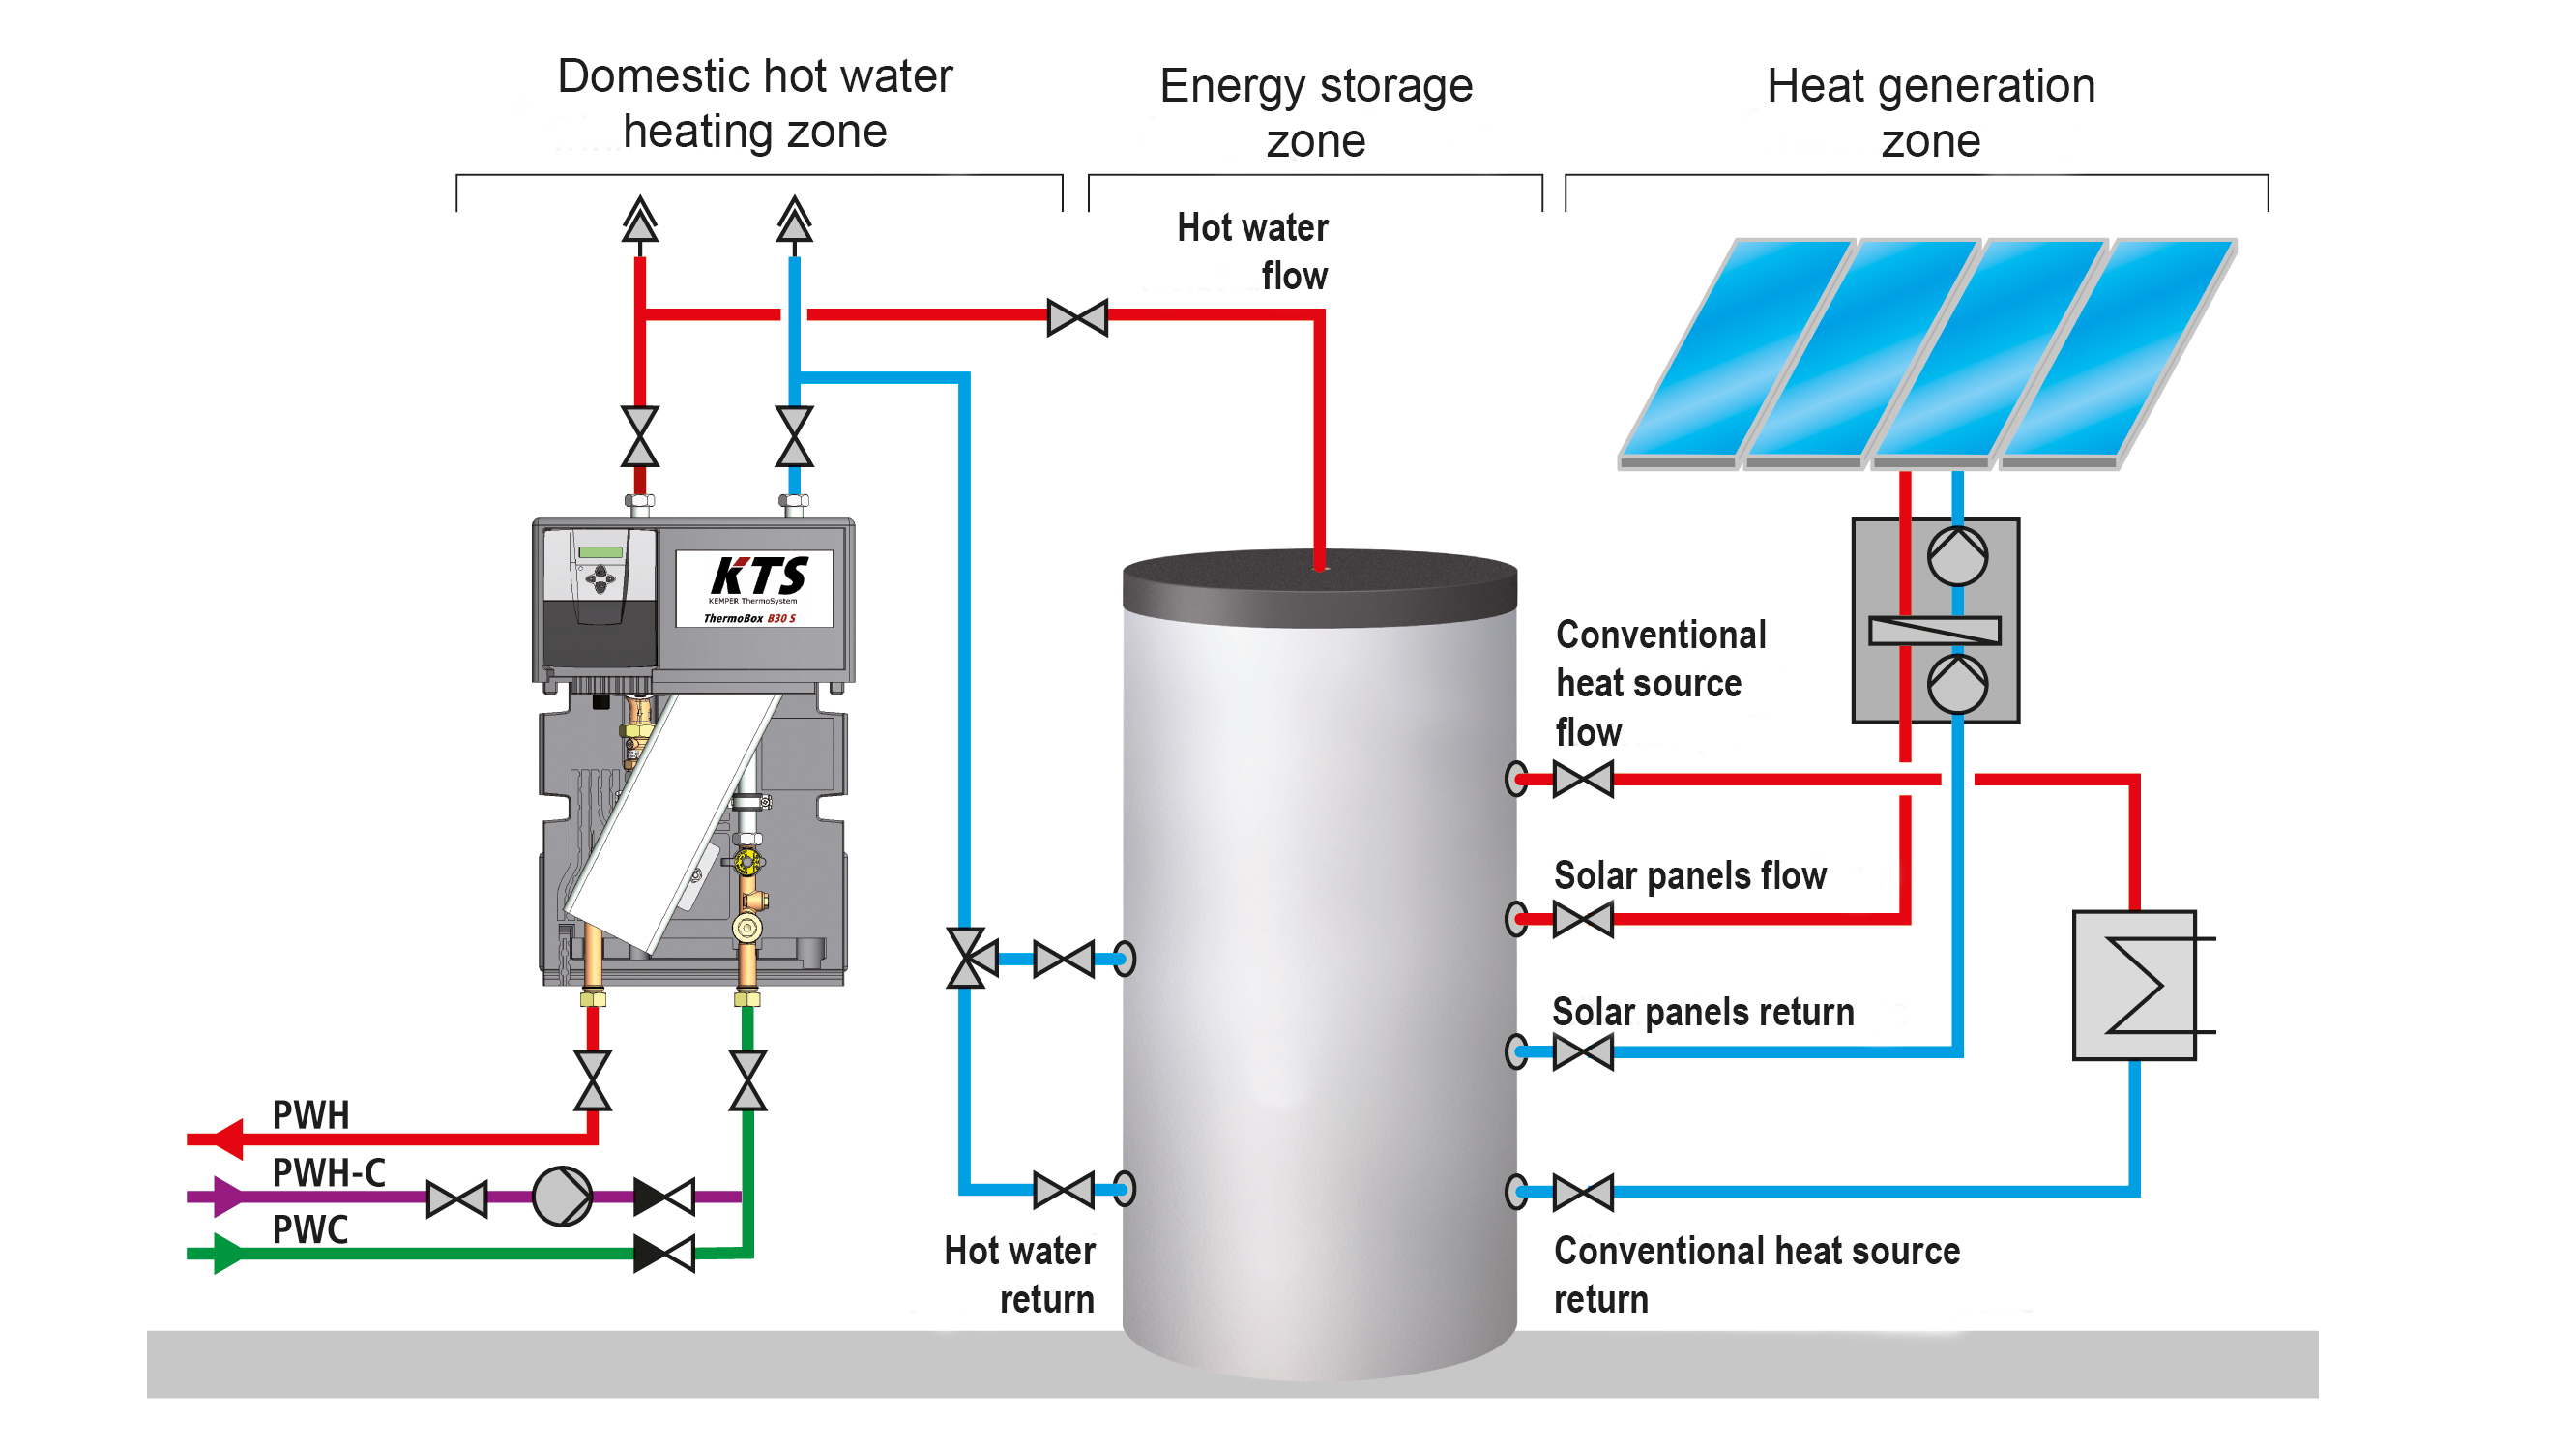 Graphic heating (potable) domestic hot water